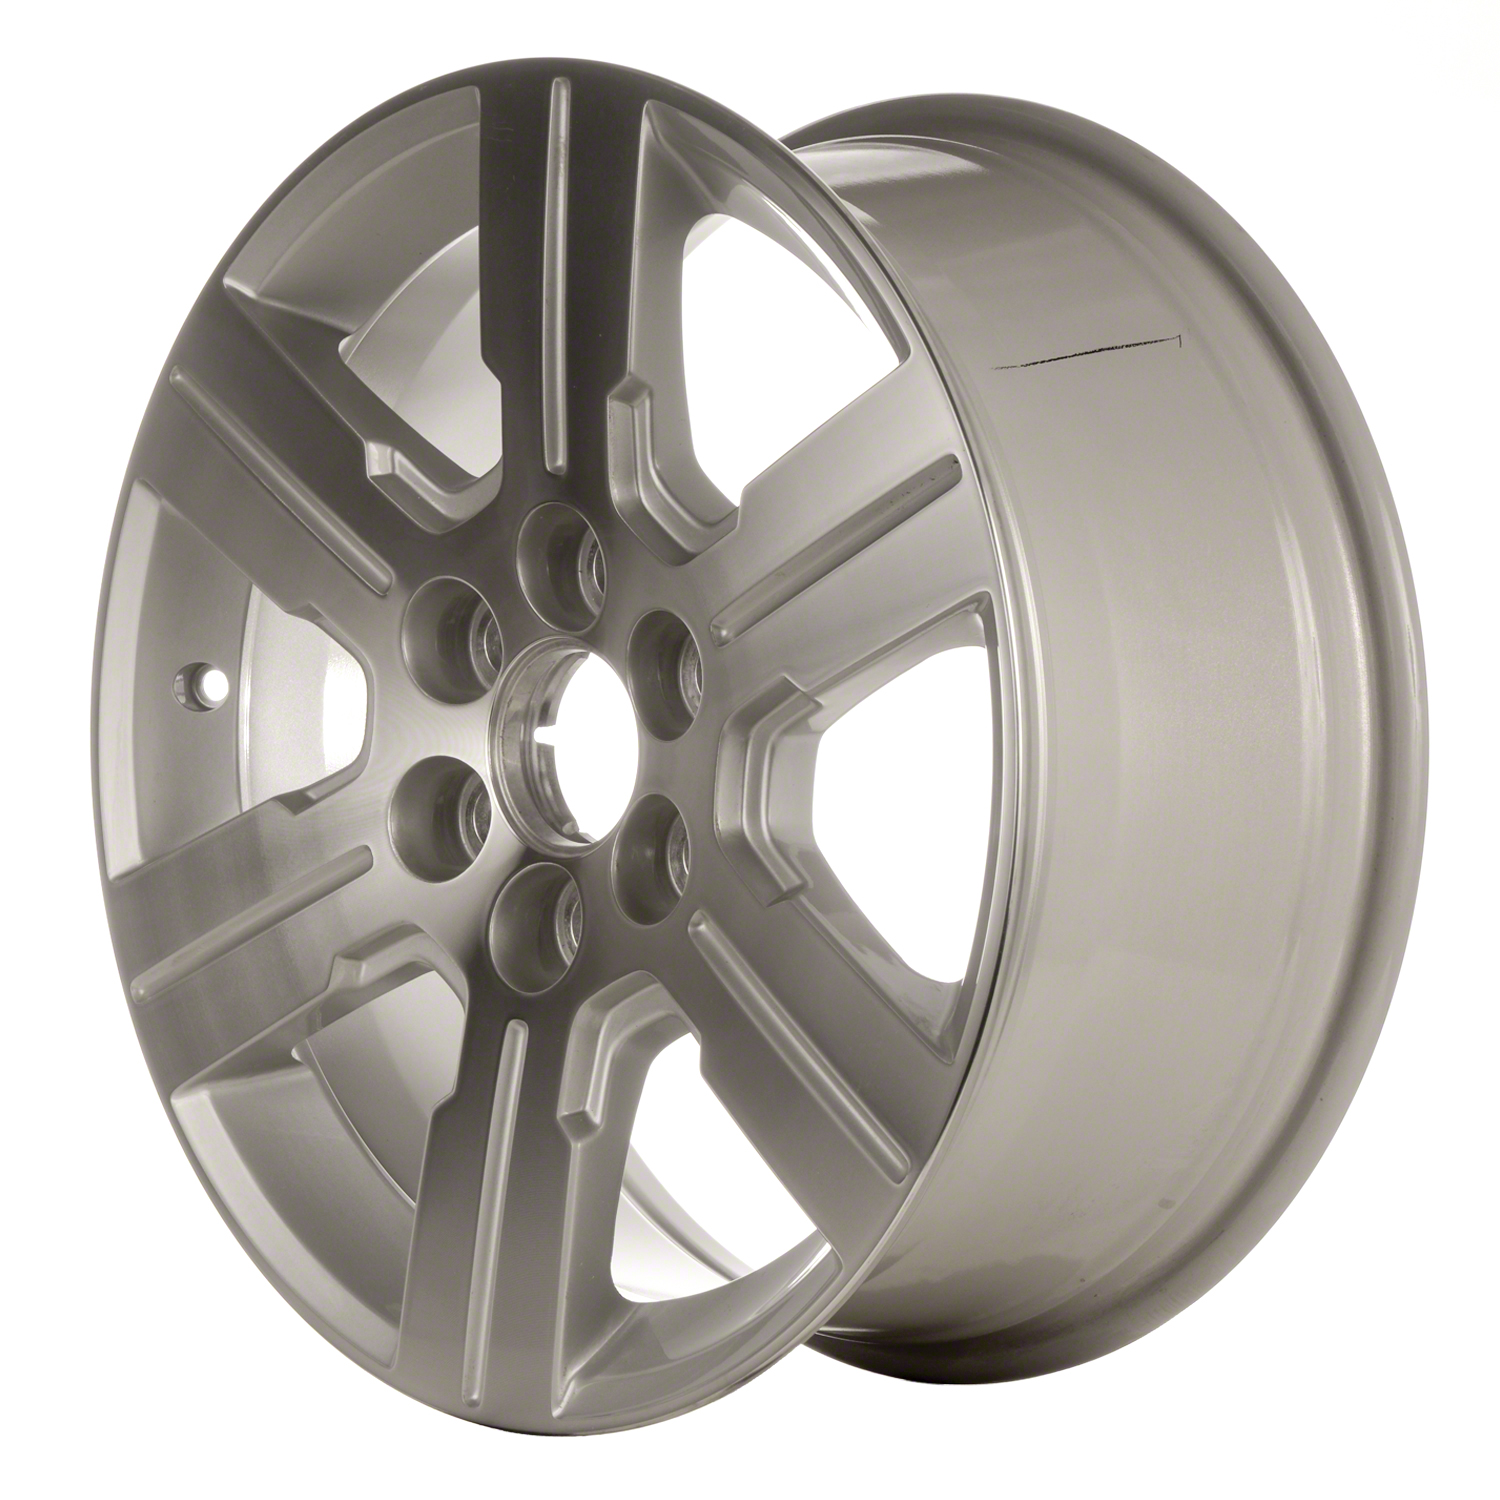 2009-2012 Chevrolet Traverse  18x7.5 Alloy Wheel, Rim Silver Metallic Painted with Machined Face - 5408